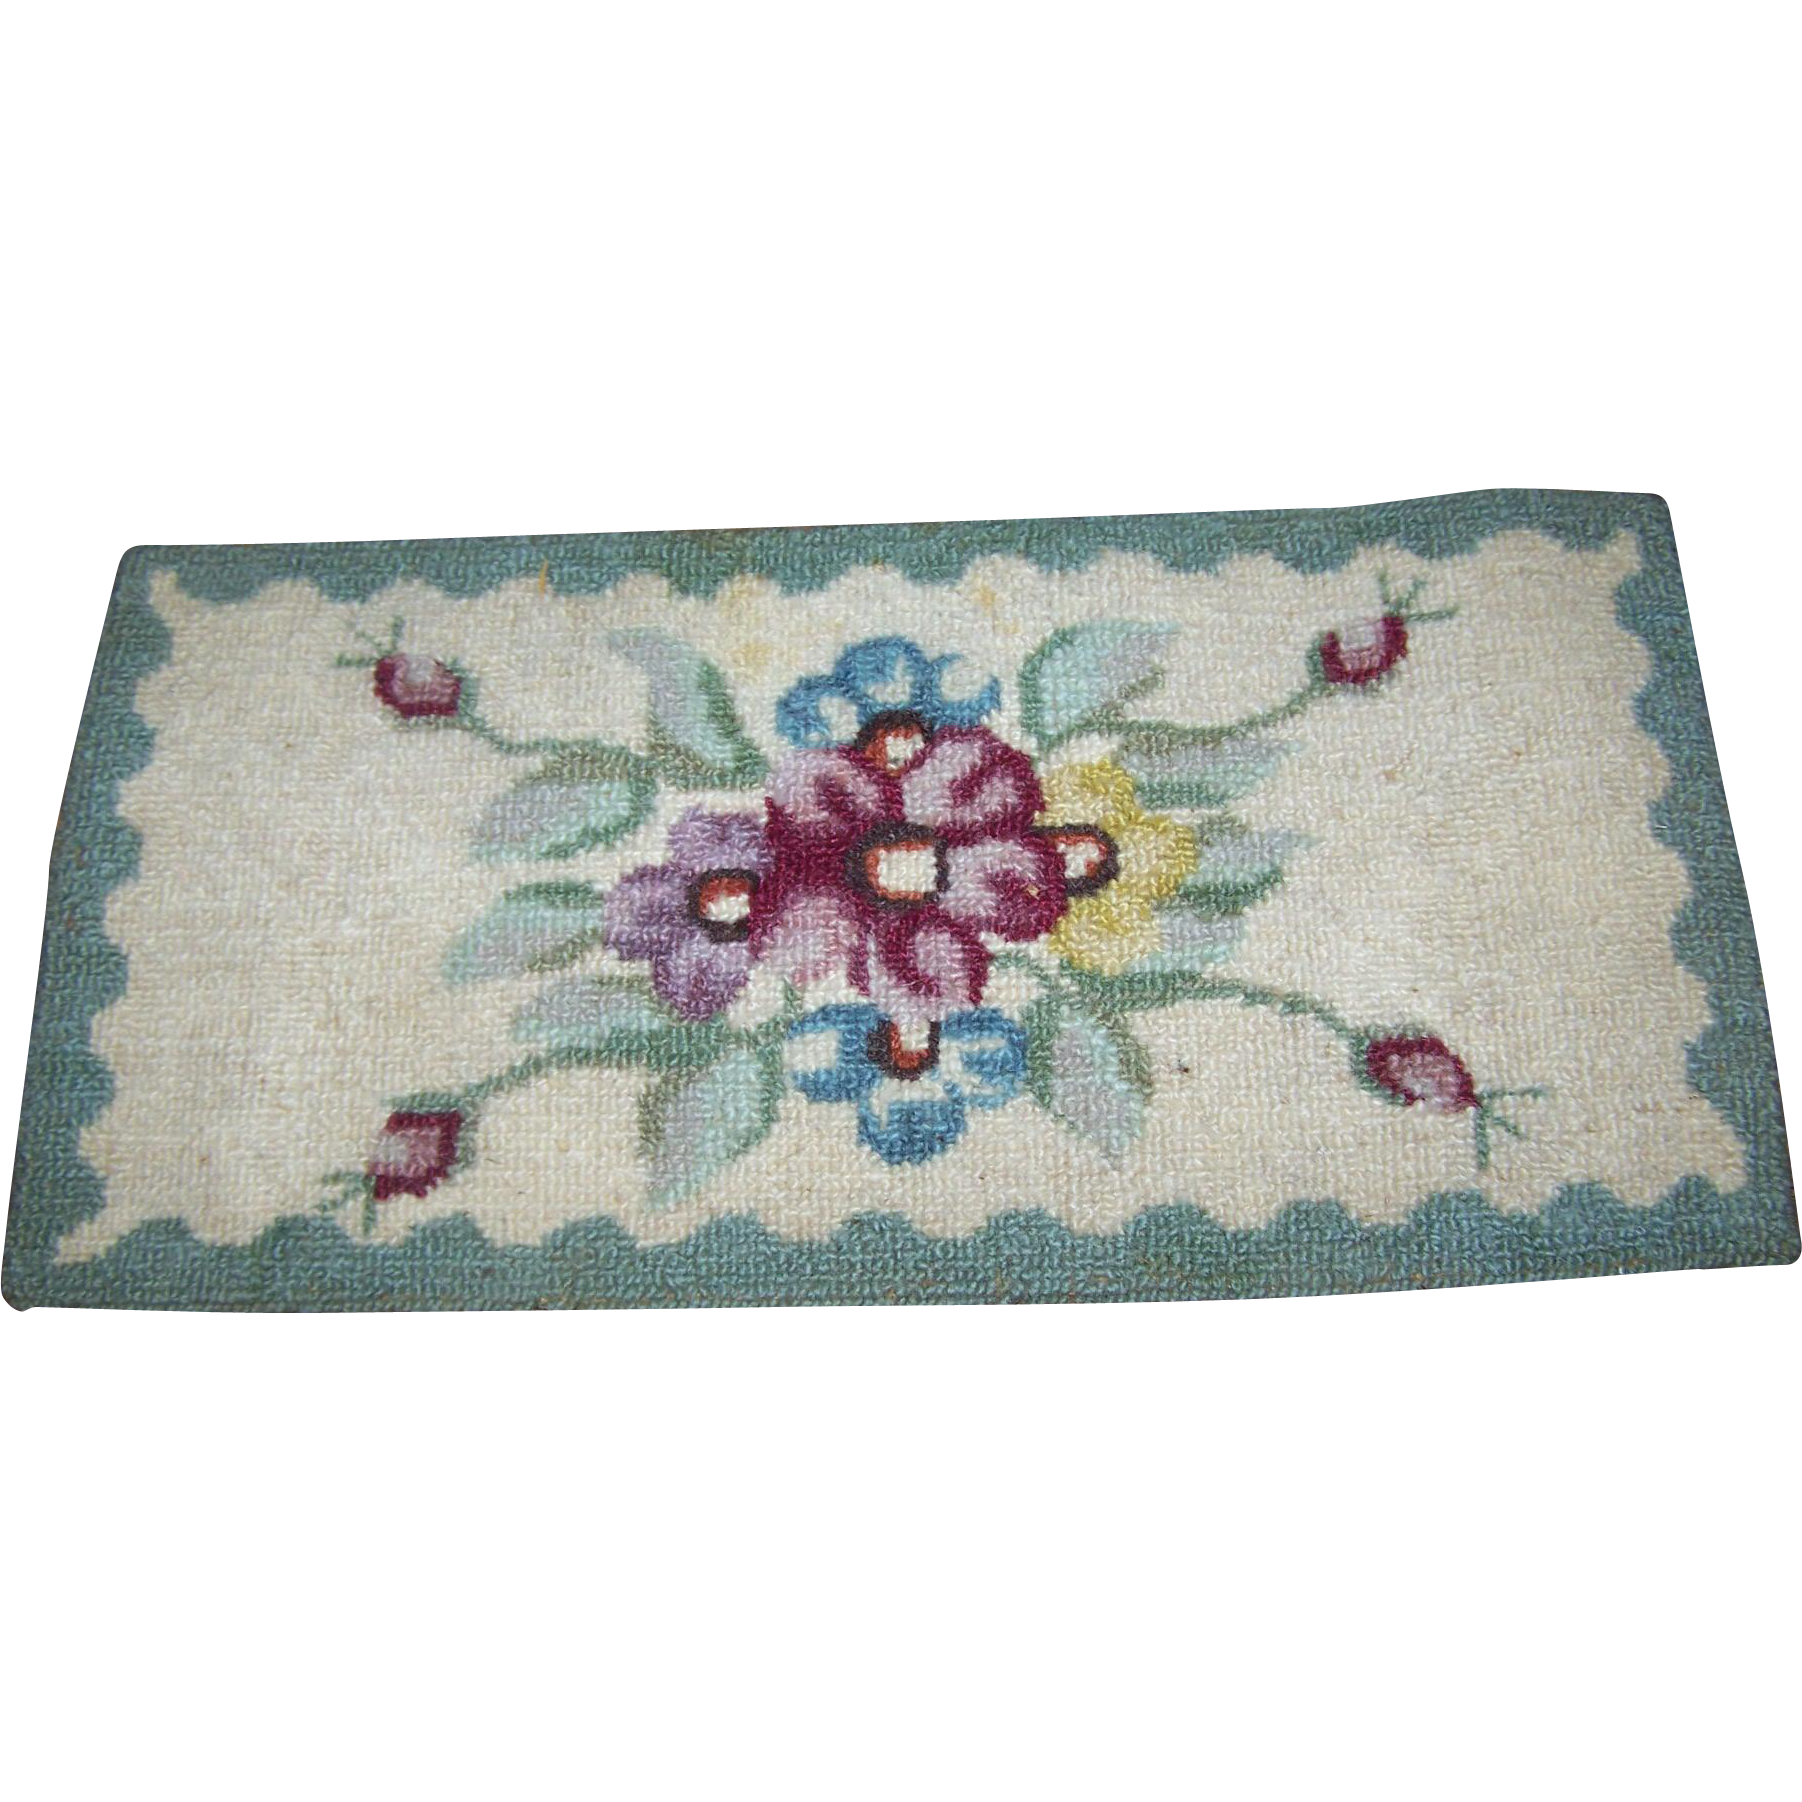 Small Vintage Hand Hooked Table Rug Mat - Nova Scotia CANADA